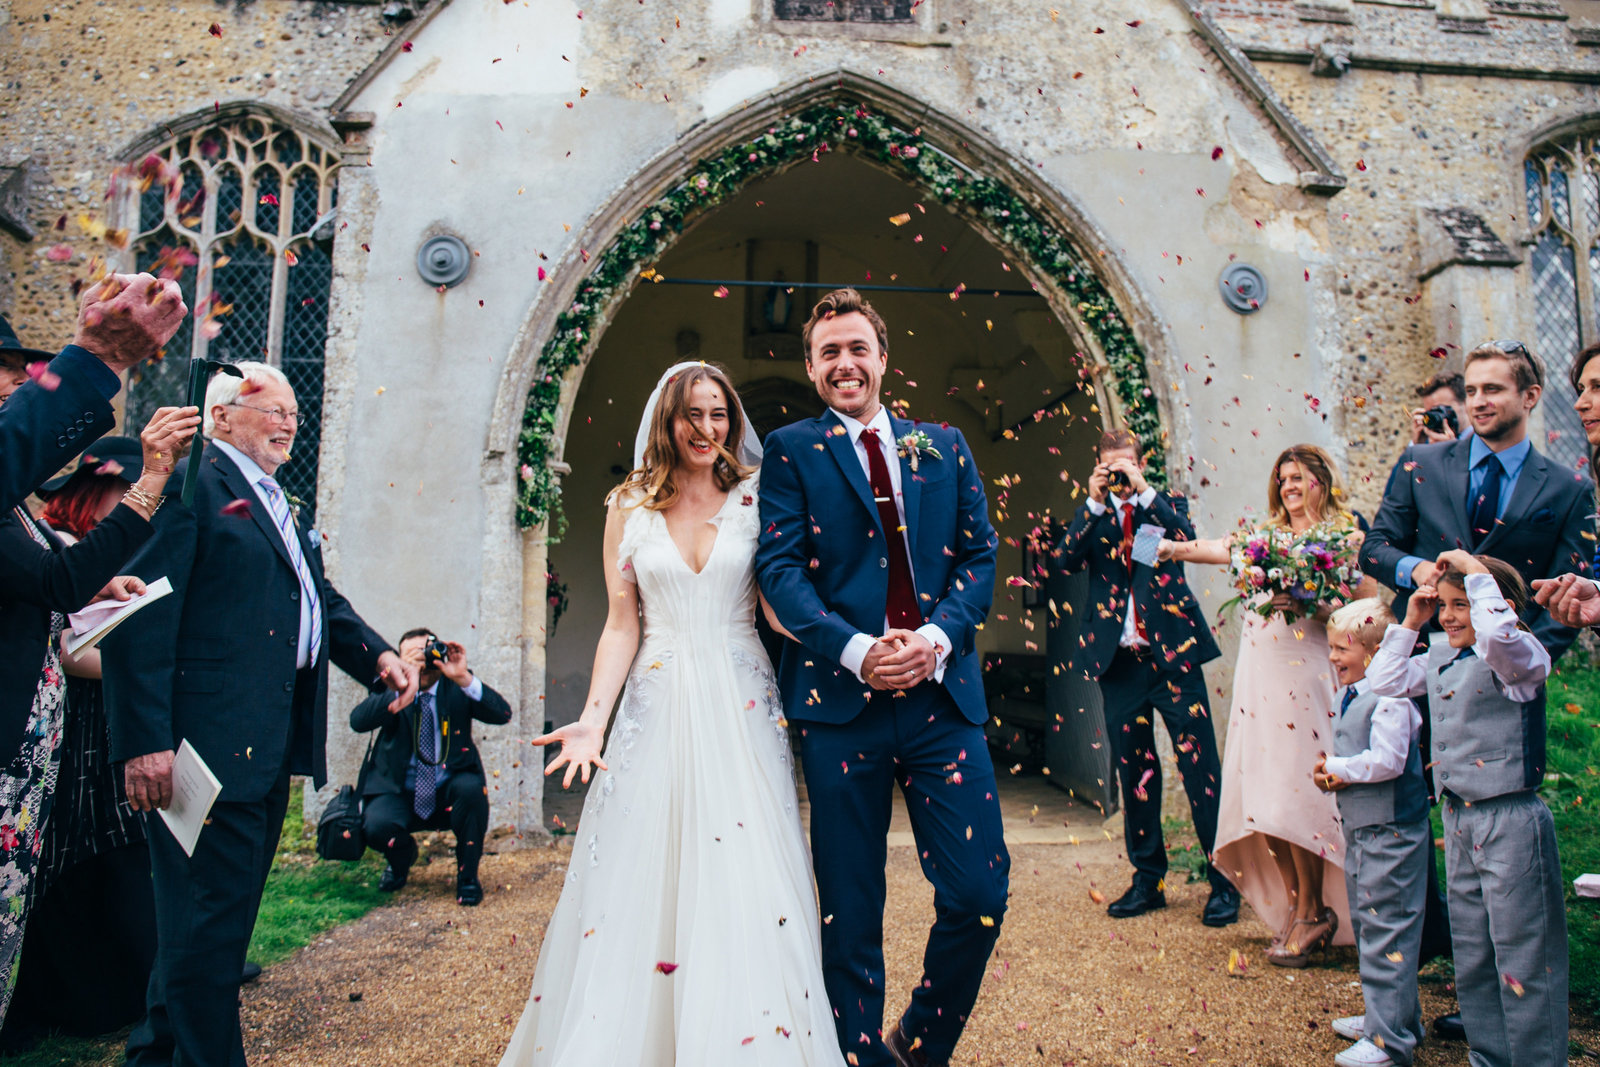 Bride and Groom leaving church down a confetti line after their Suffolk Wedding Ceremony